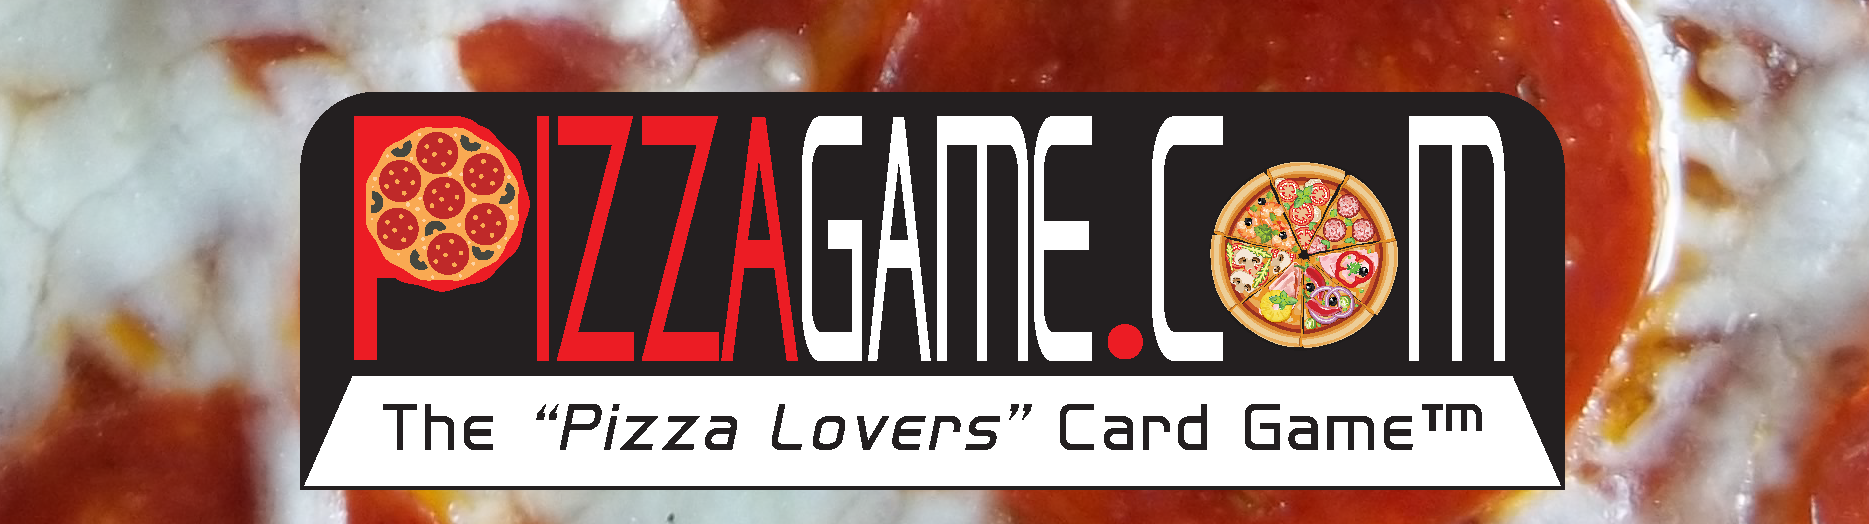 Pizza Card Game